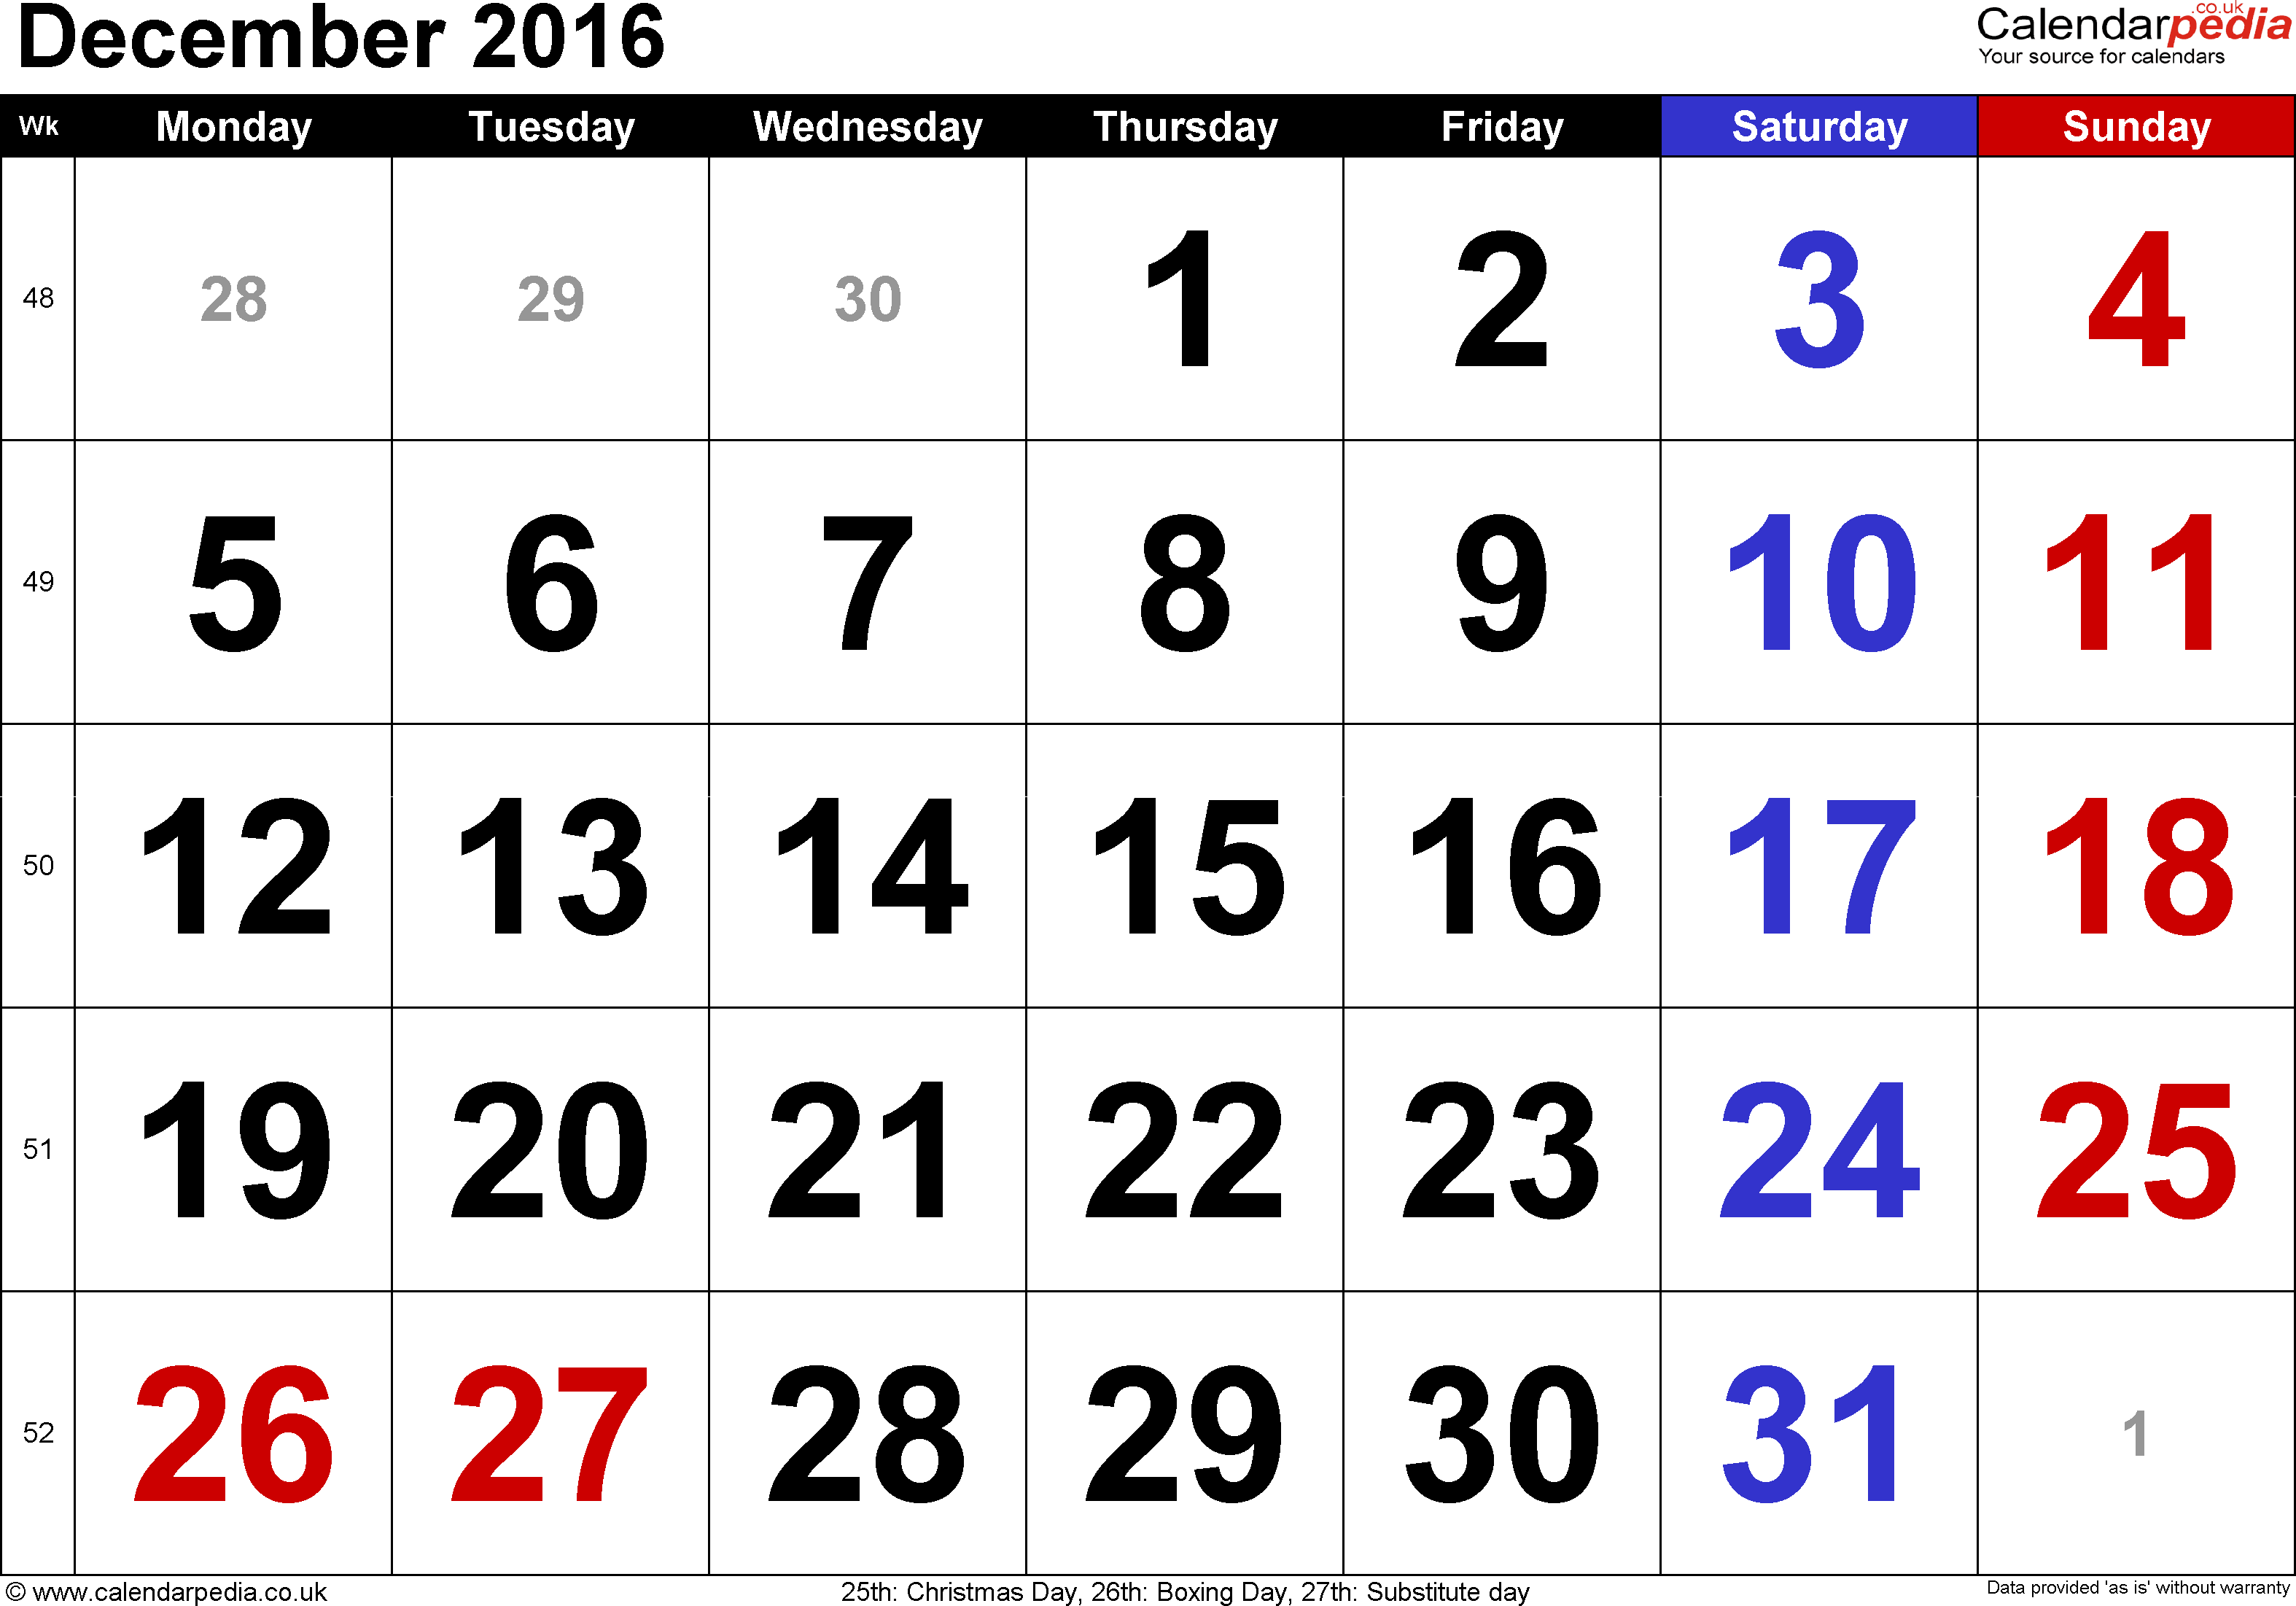 Calendar December 2016, landscape orientation, large numerals, 1 page, with UK bank holidays and week numbers